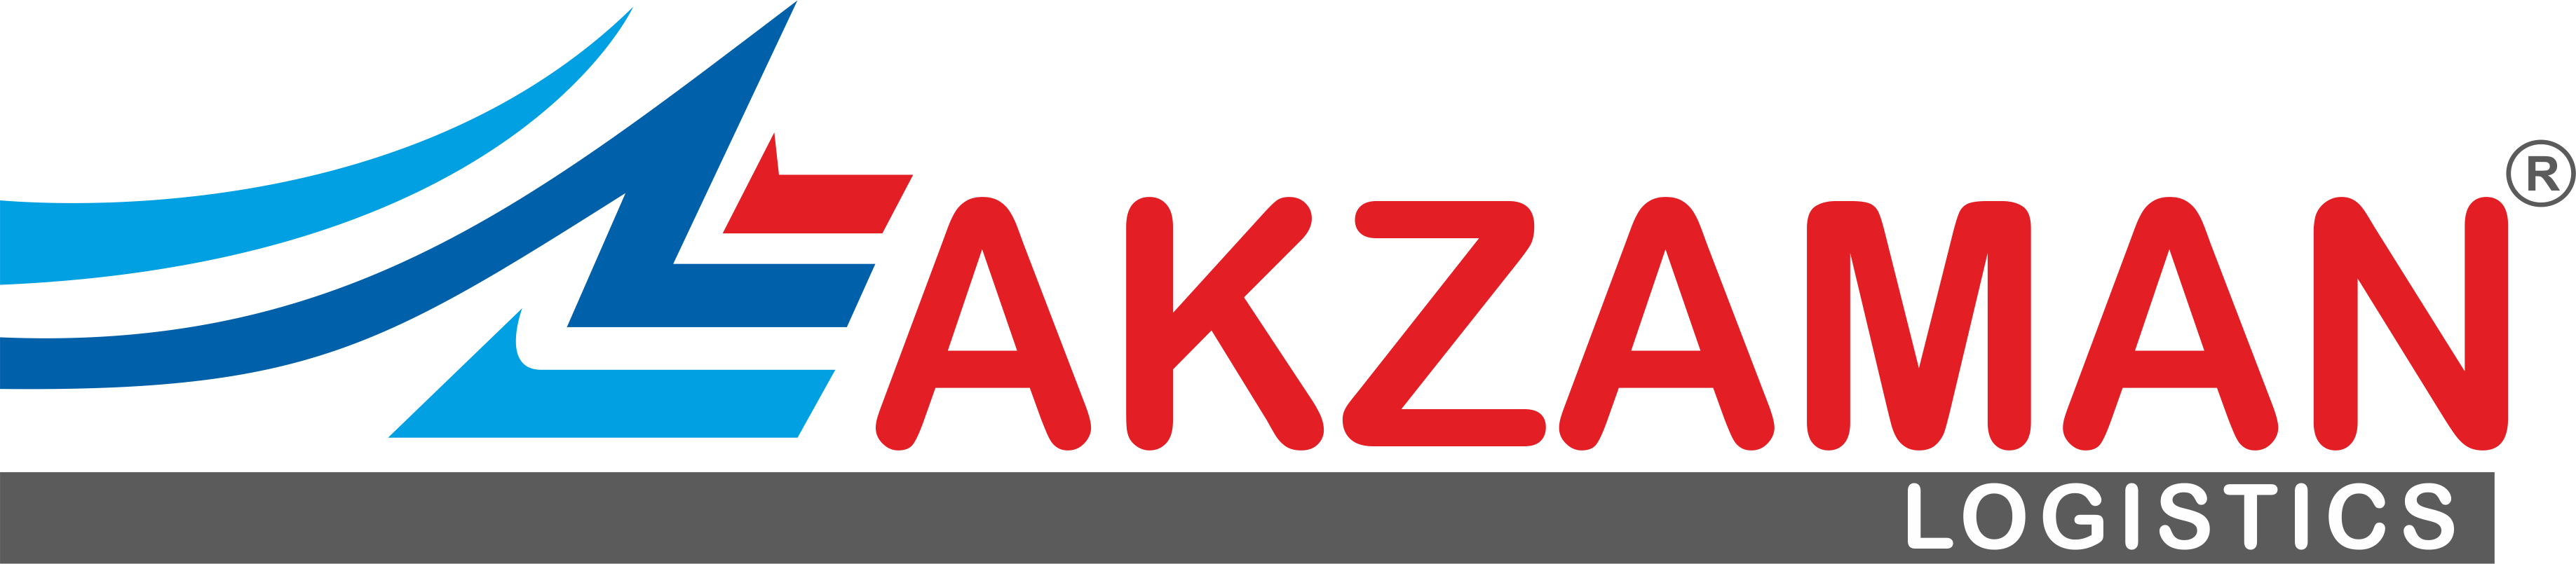 Akzaman Logistics designed by ysfg